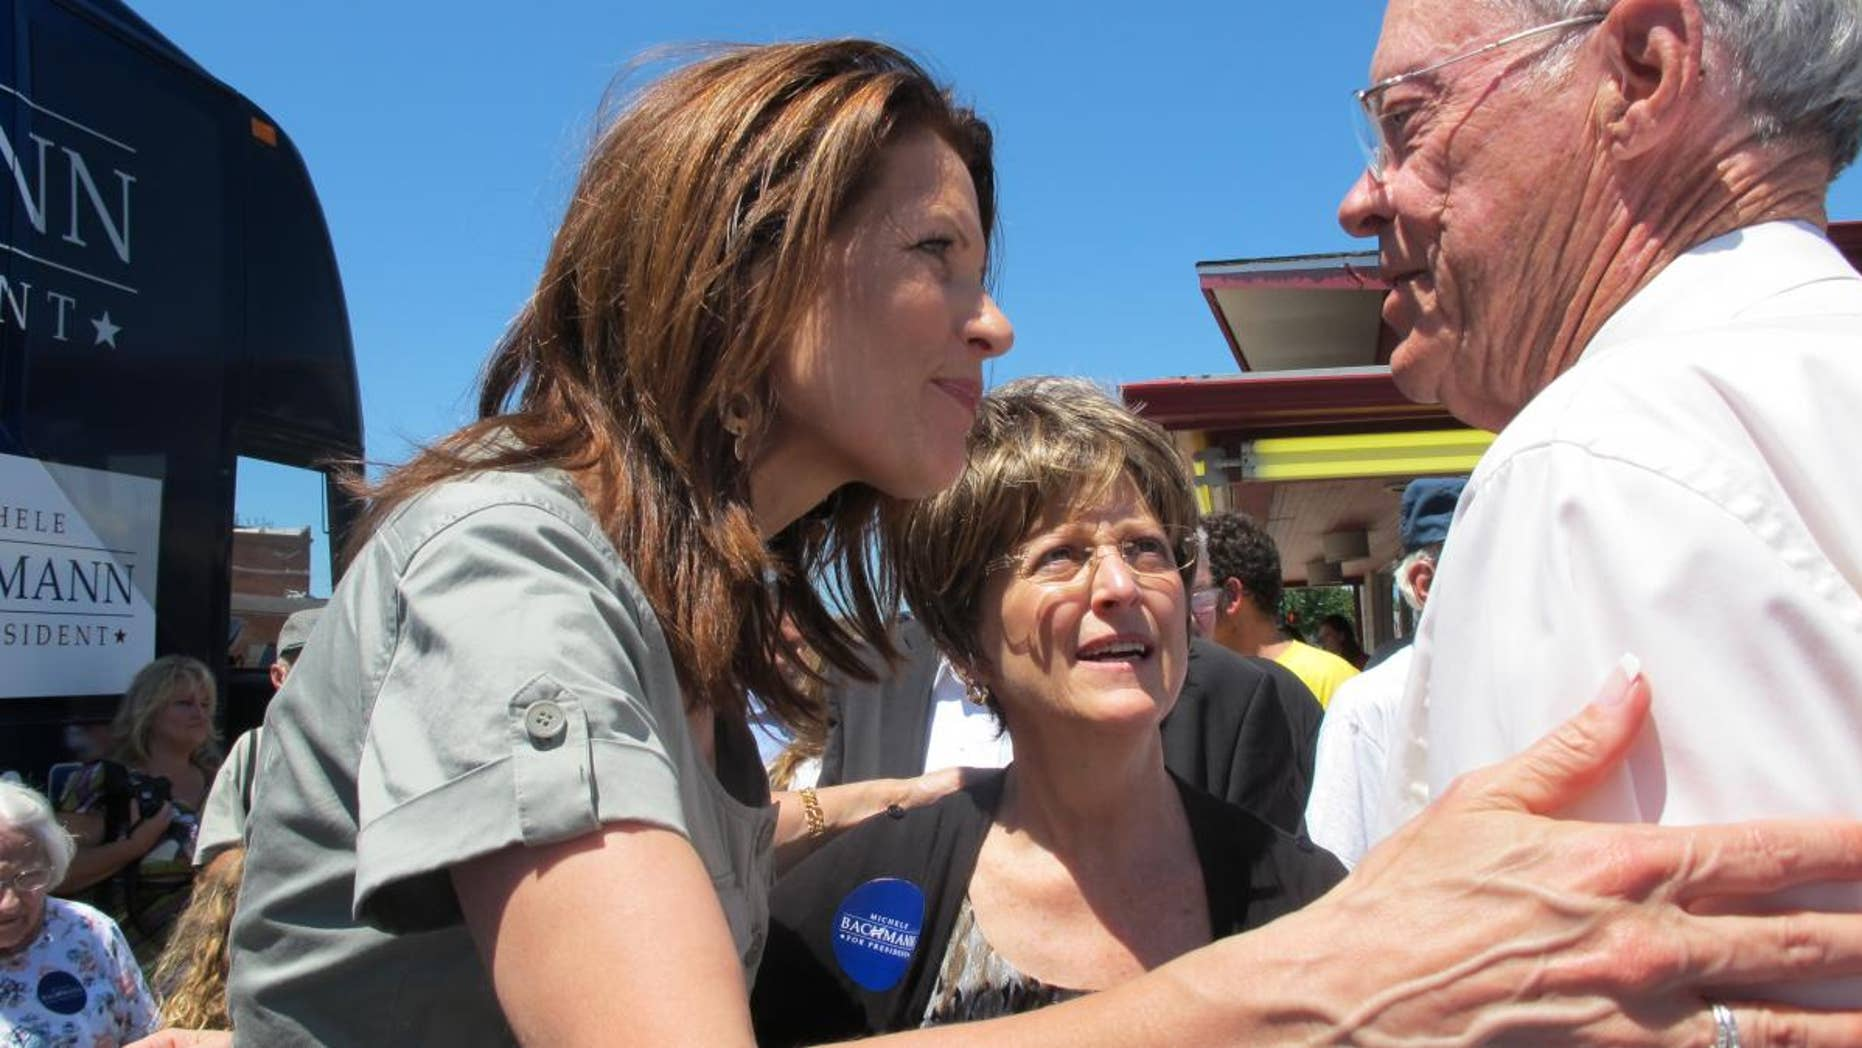 Minn. Rep. Michele Bachmann, left, greets supporters at a rally in Marshalltown, Iowa. (Fox News Photo)